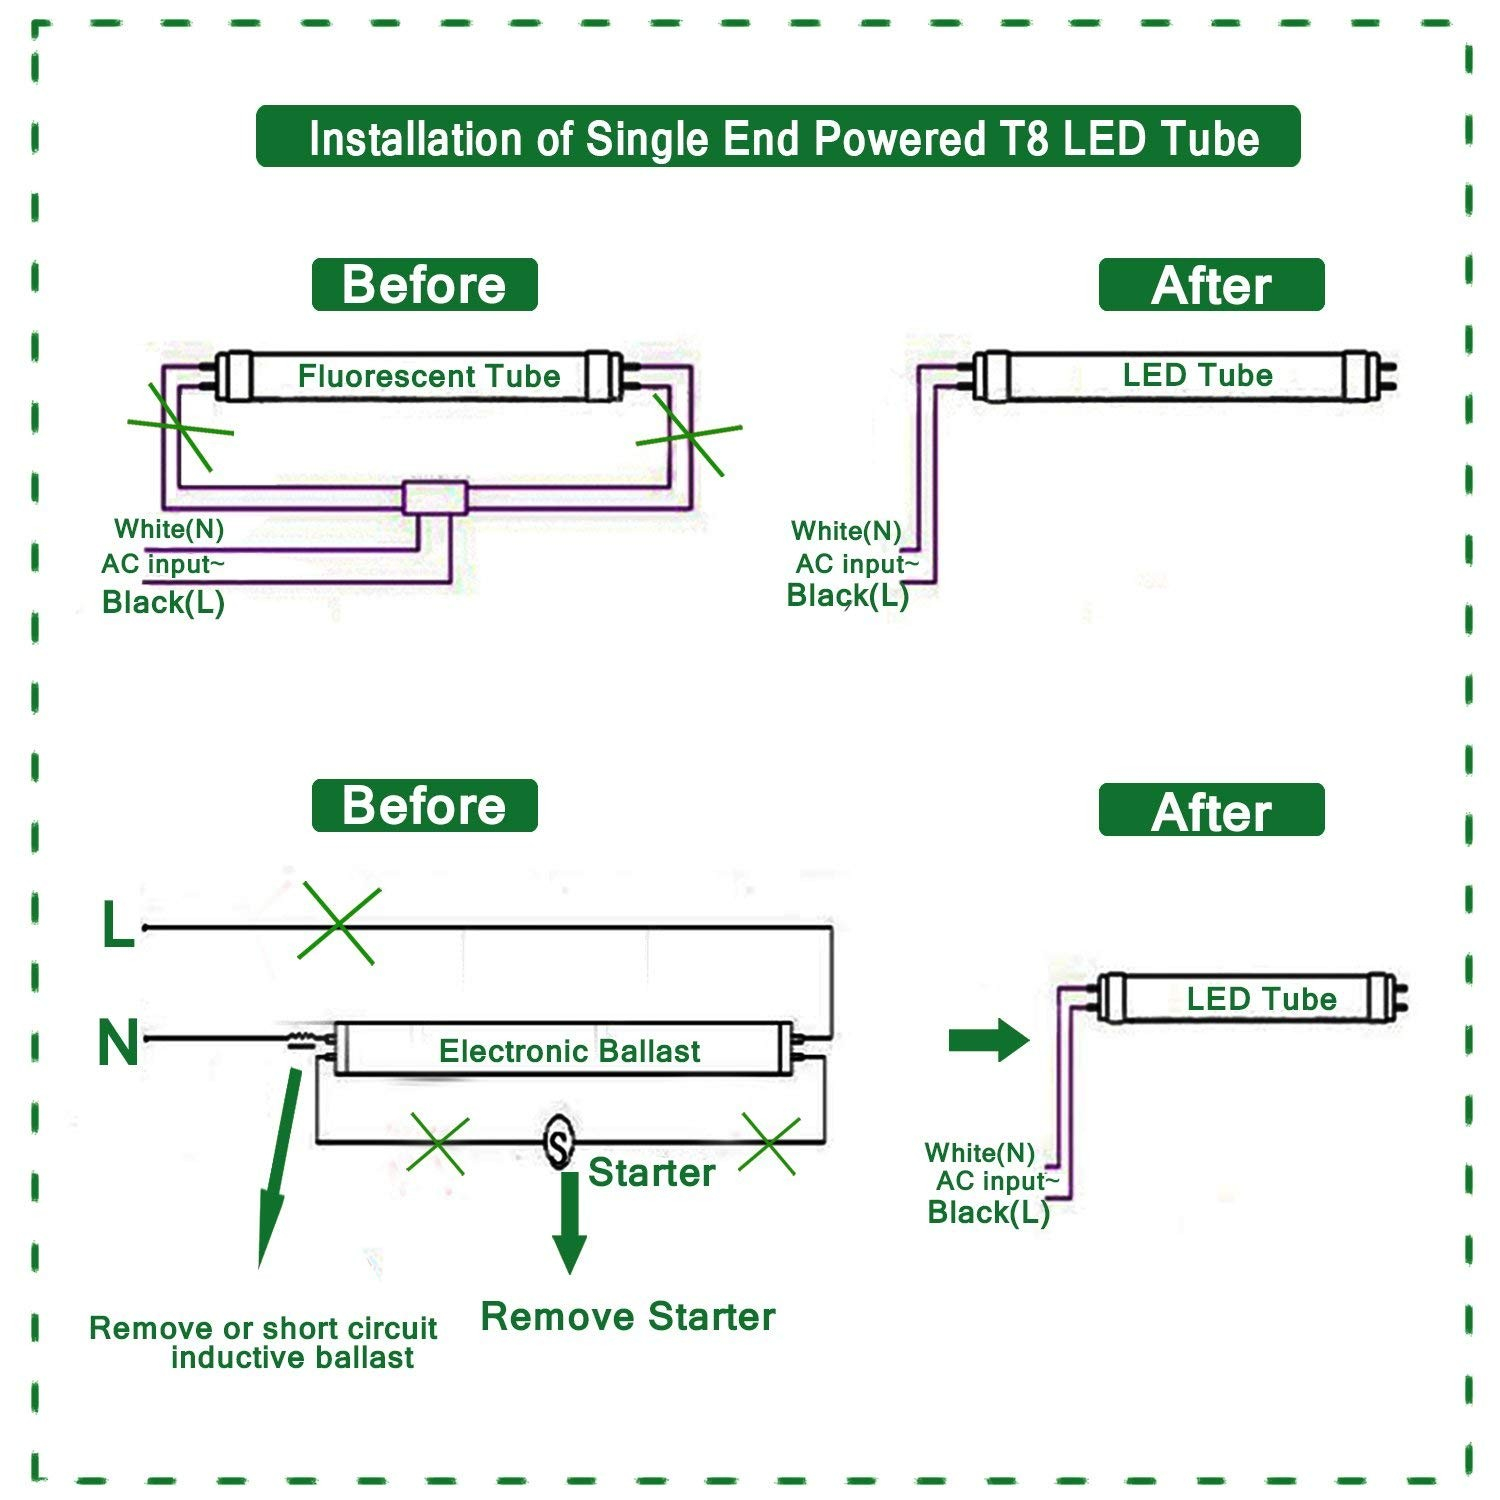 t8 led tube wiring diagram Download-Wiring Diagram Led Tube Philips Refrence T8 Led Tube Wiring Diagram Wiring Diagram 2-j